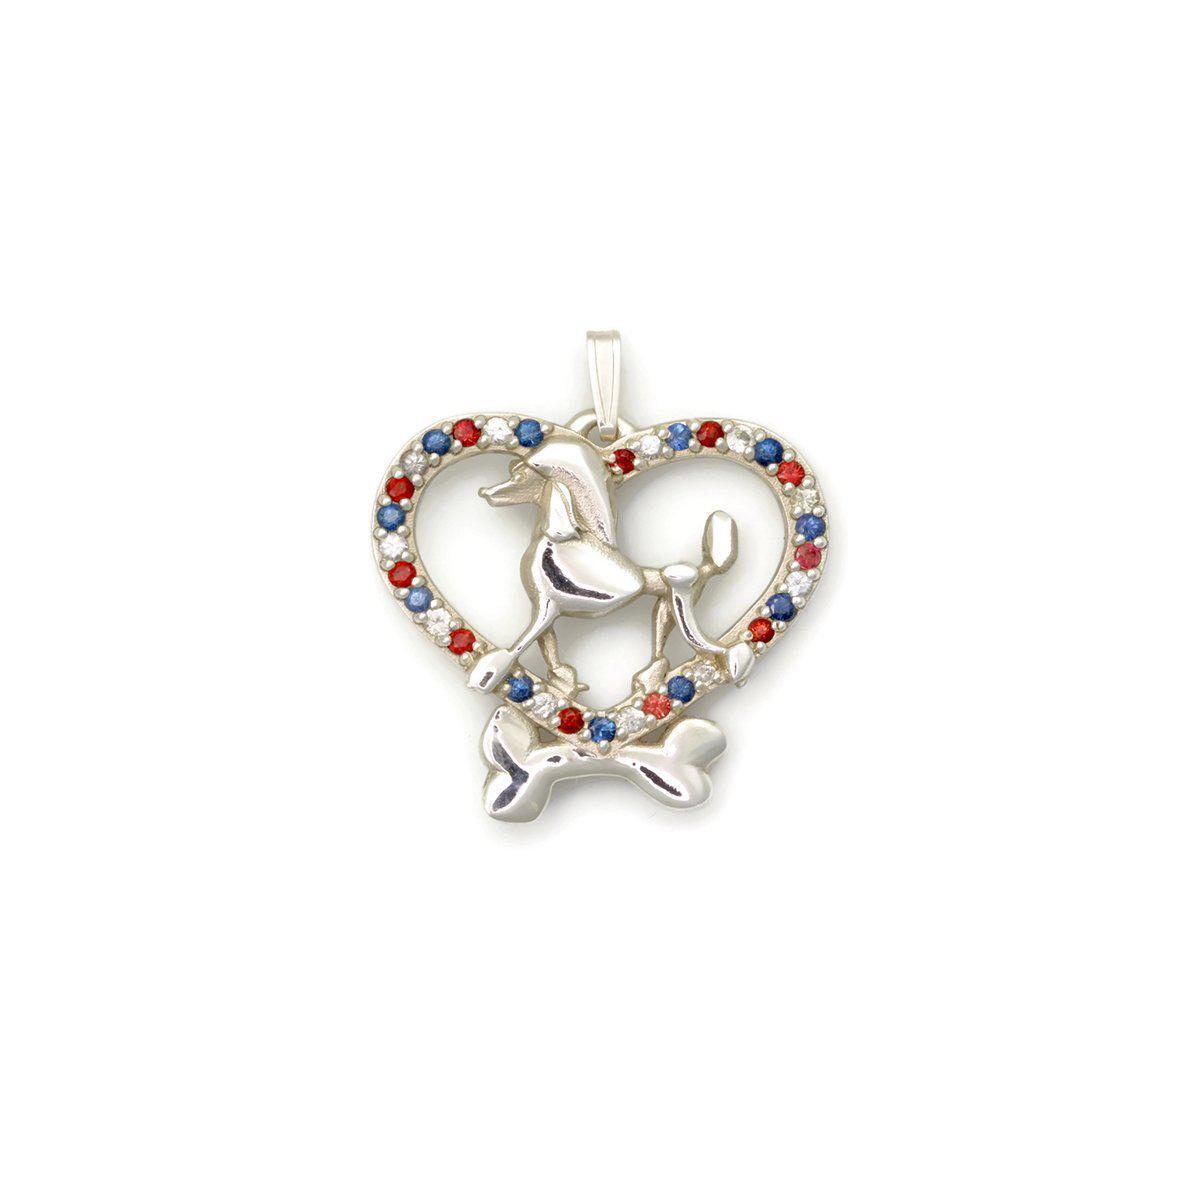 Donna Pizarro Designs Sterling Silver And Sapphire Poodle Necklace With 33 Sapphires sfJDoV7y